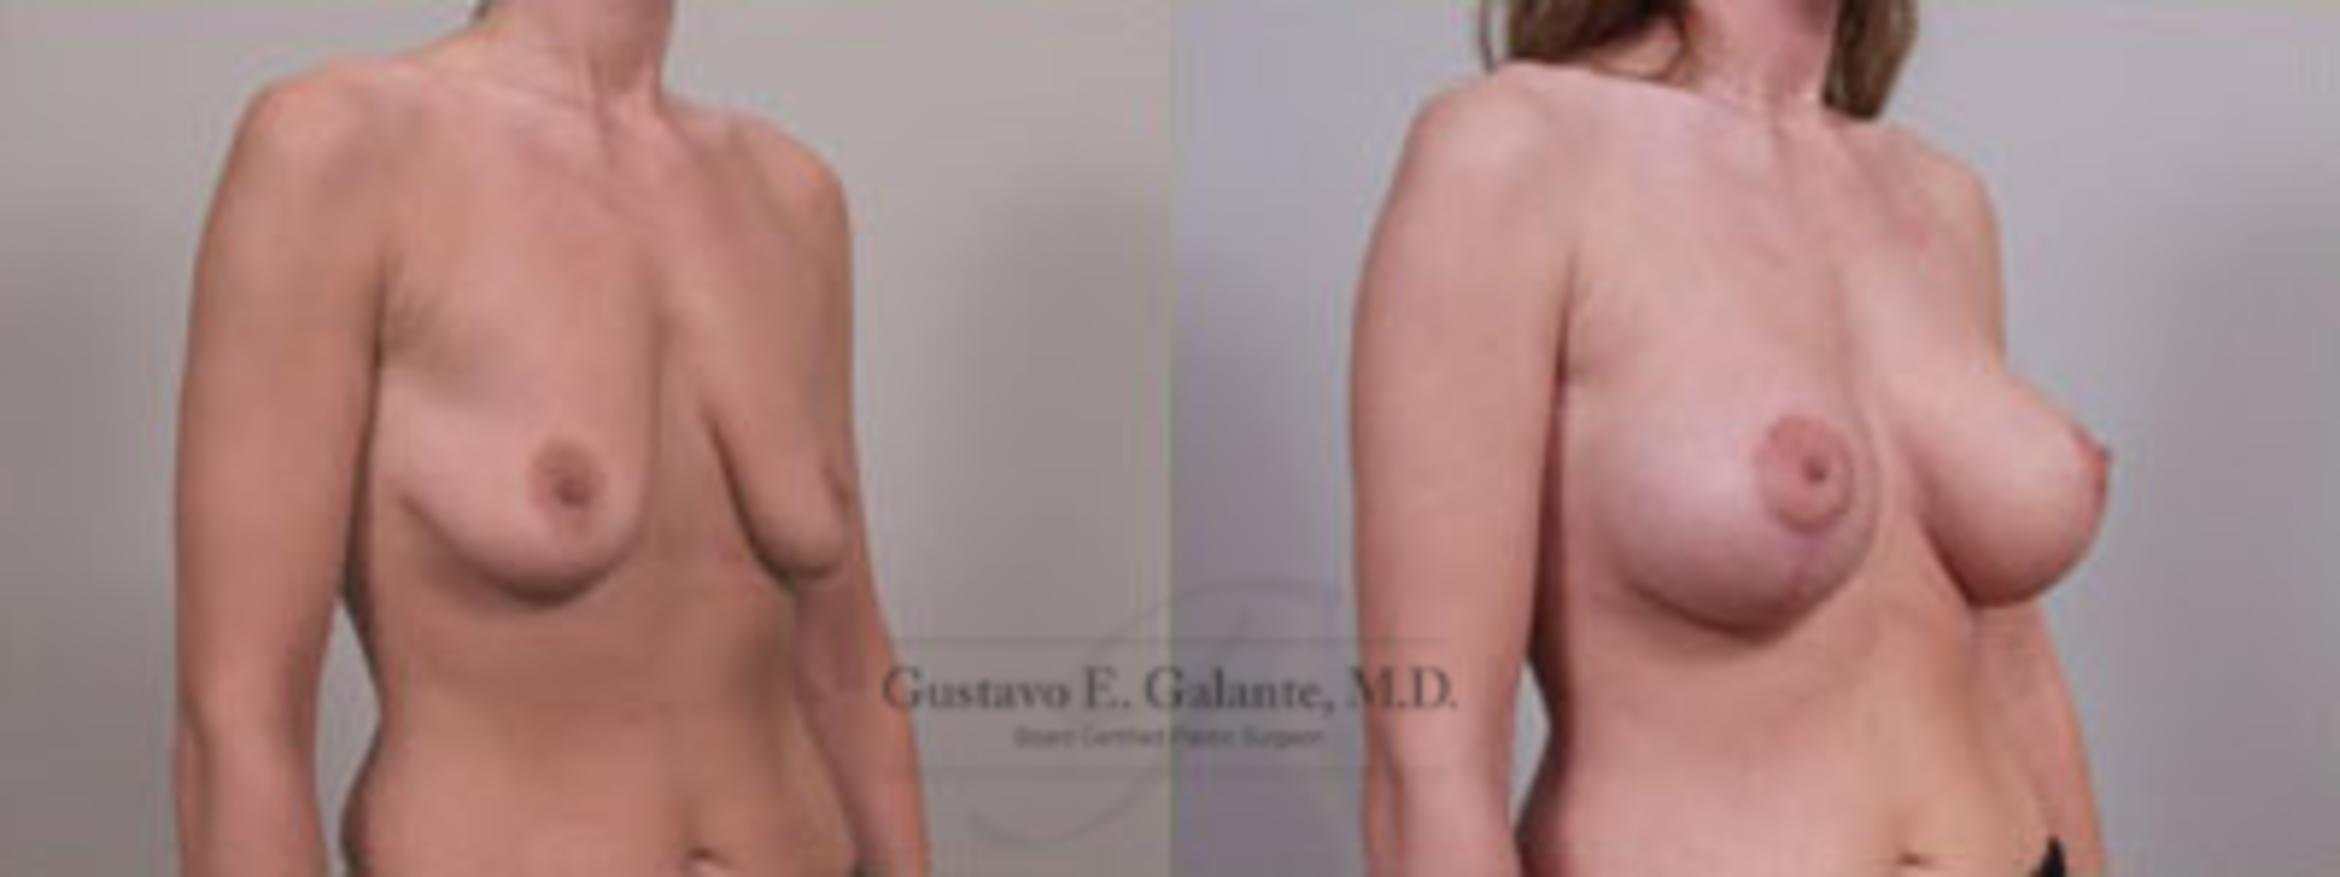 Breast Lift (Mastopexy) Case 10 Before & After View #1 | Valparaiso & Schererville, IN | Gustavo E. Galante, MD